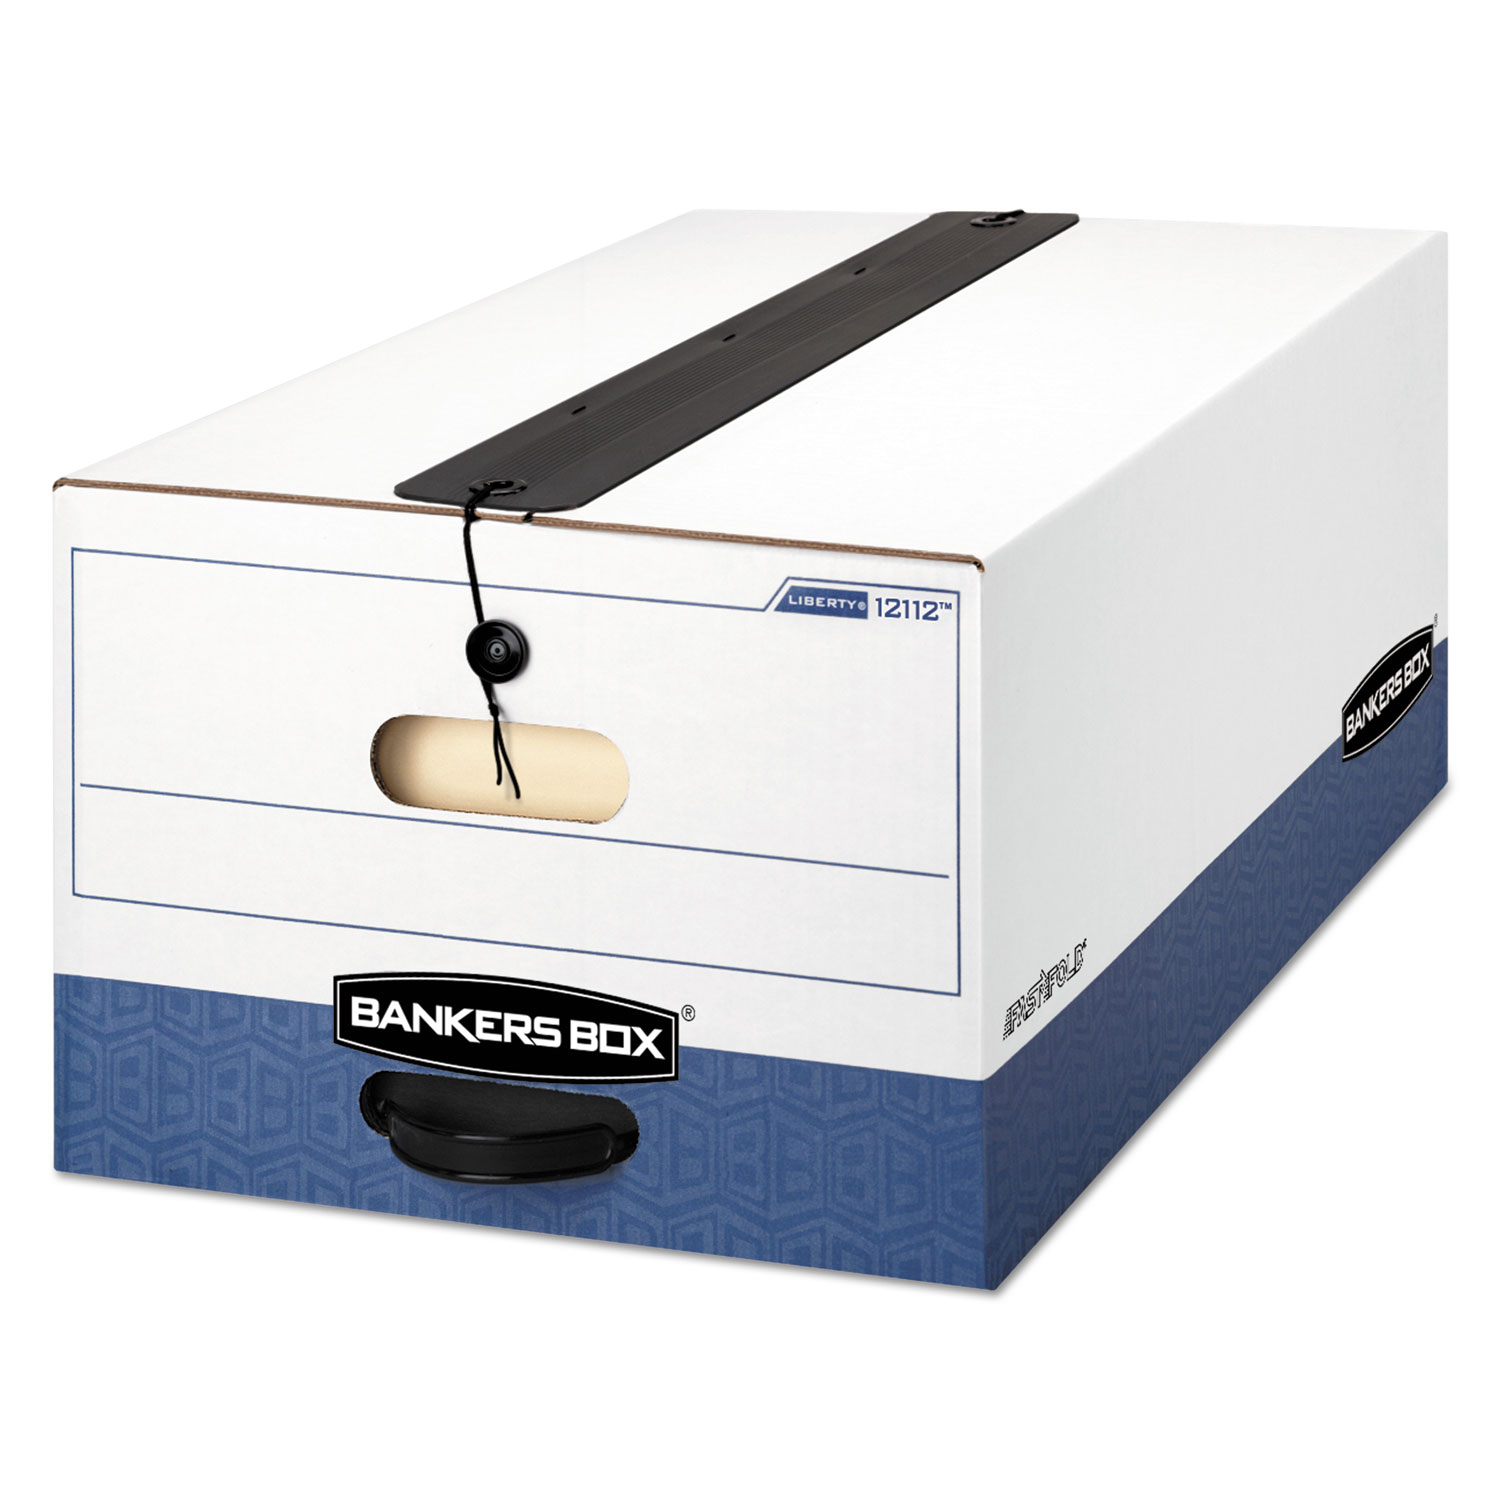 "LIBERTY Plus Heavy-Duty Strength Storage Boxes, Legal Files, 15.25"" x 24.13"" x 10.75"", White/Blue, 12/Carton"